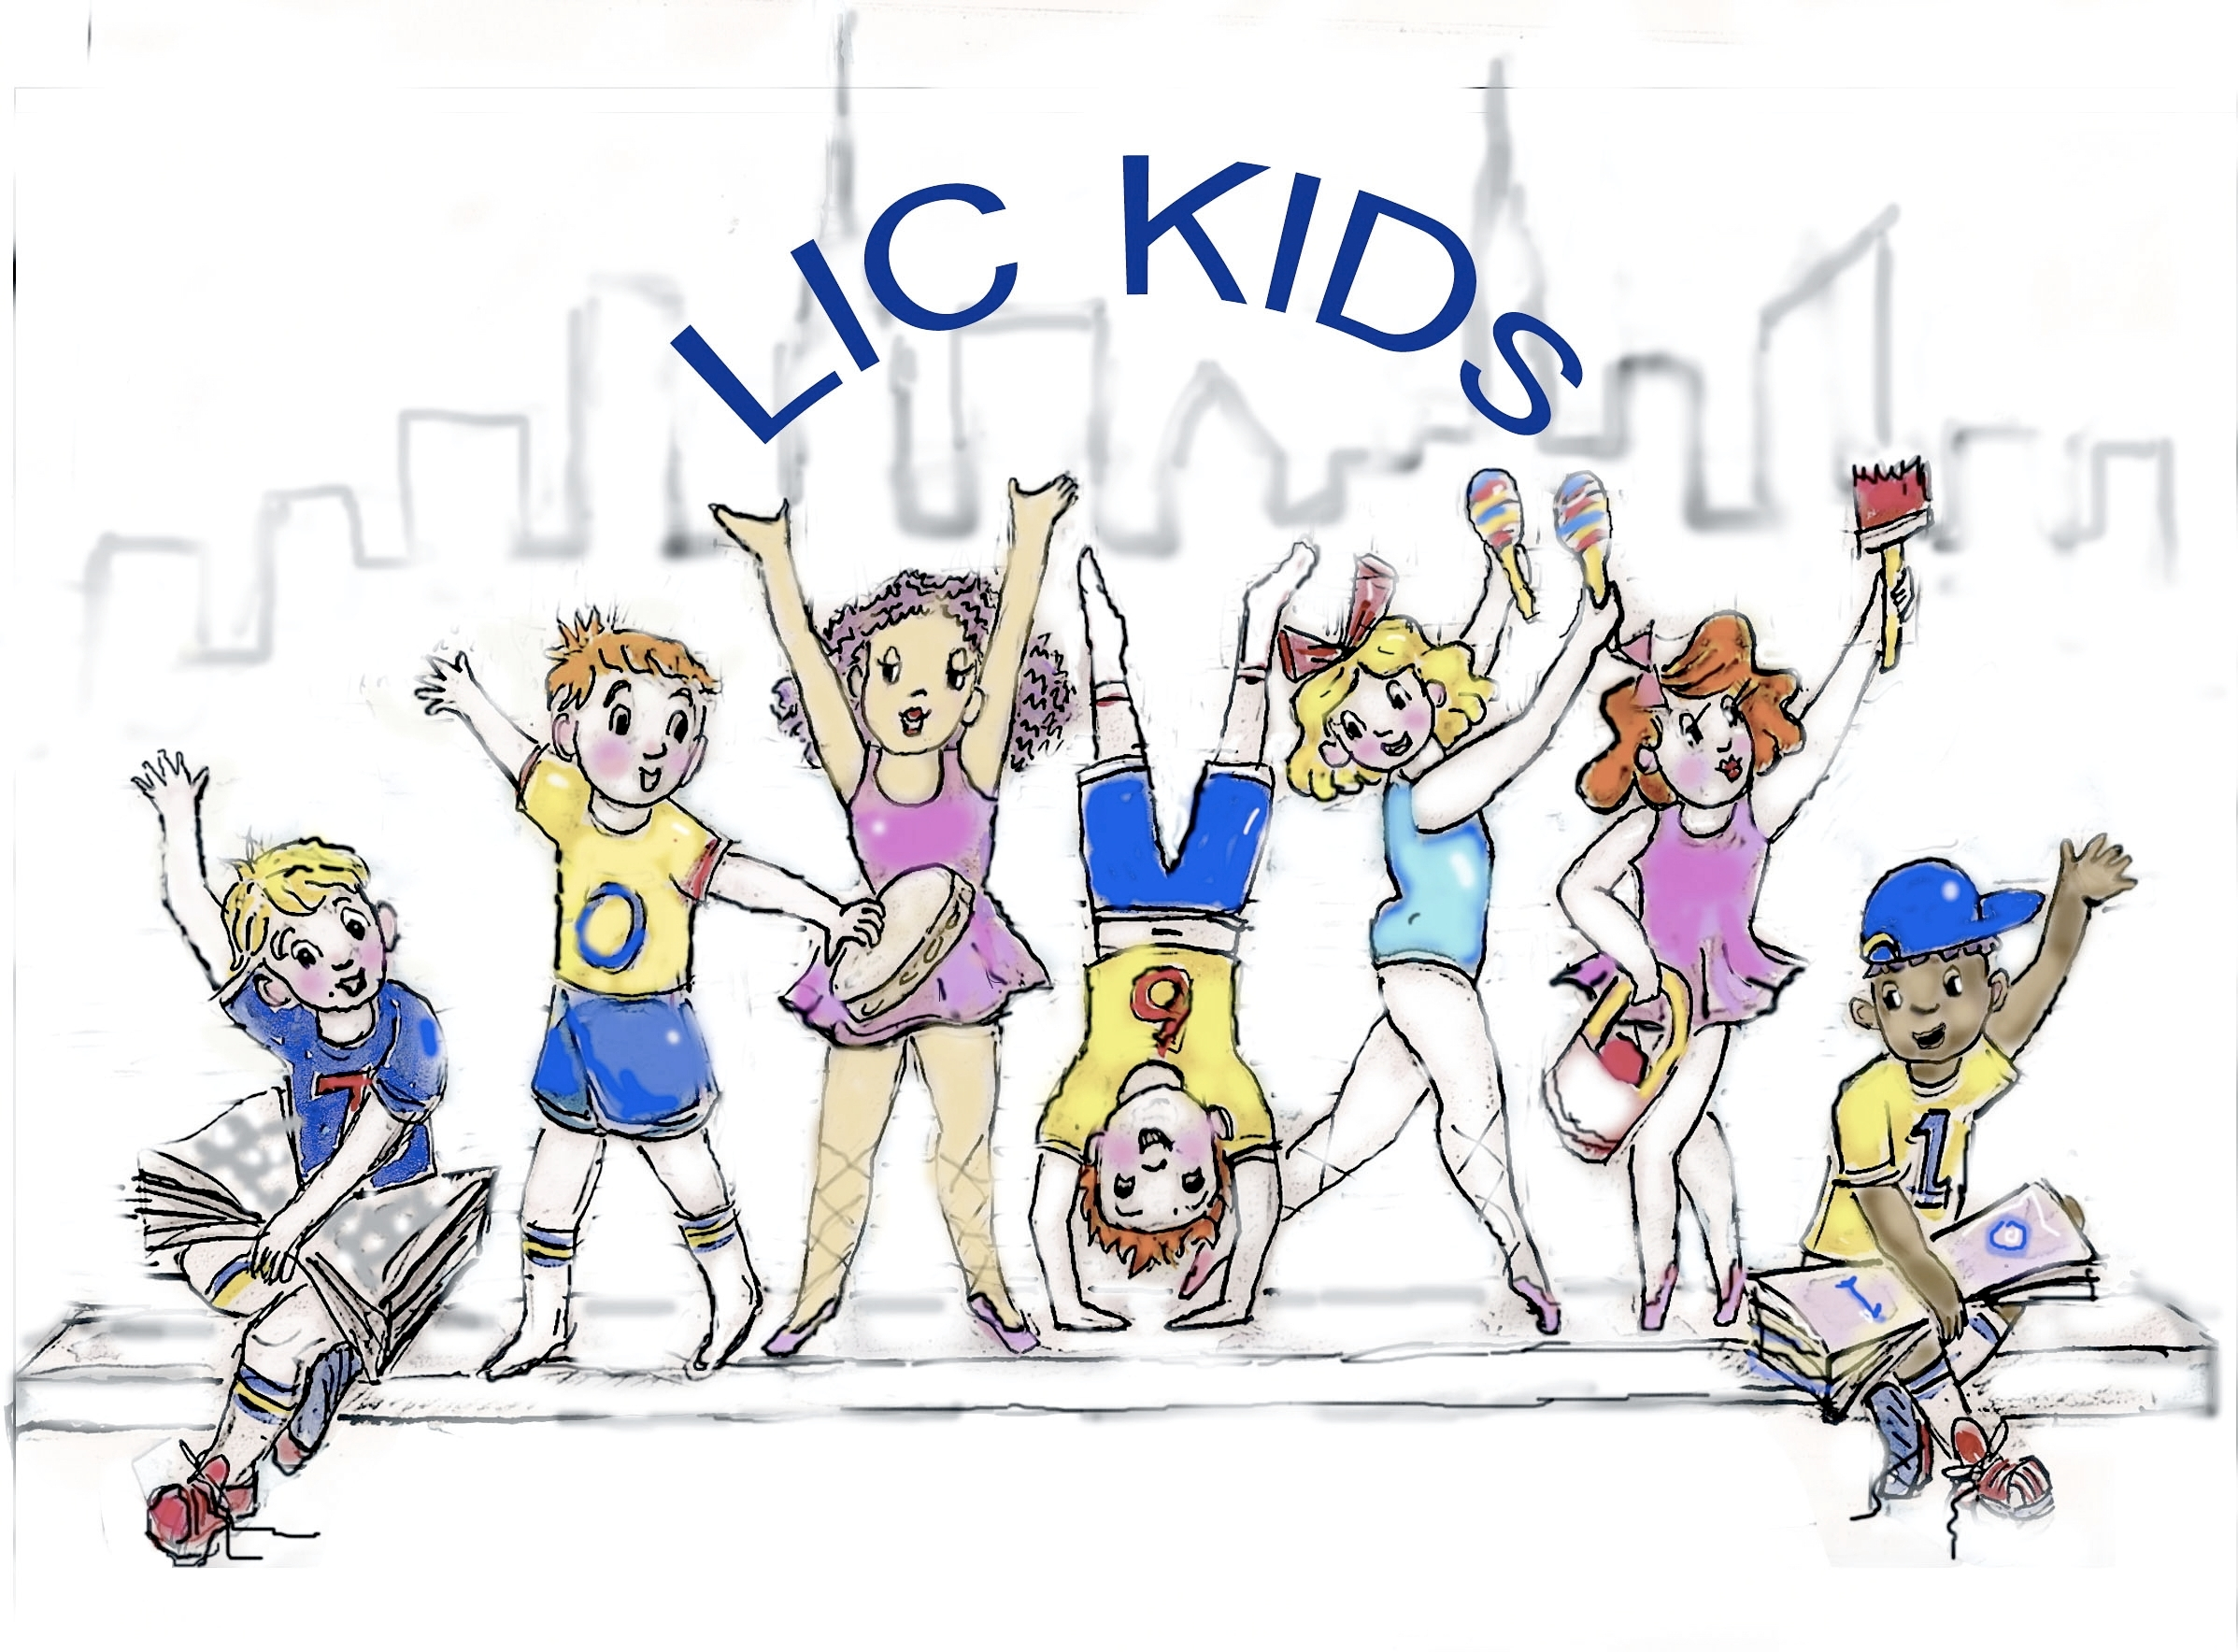 Long Island City Kids